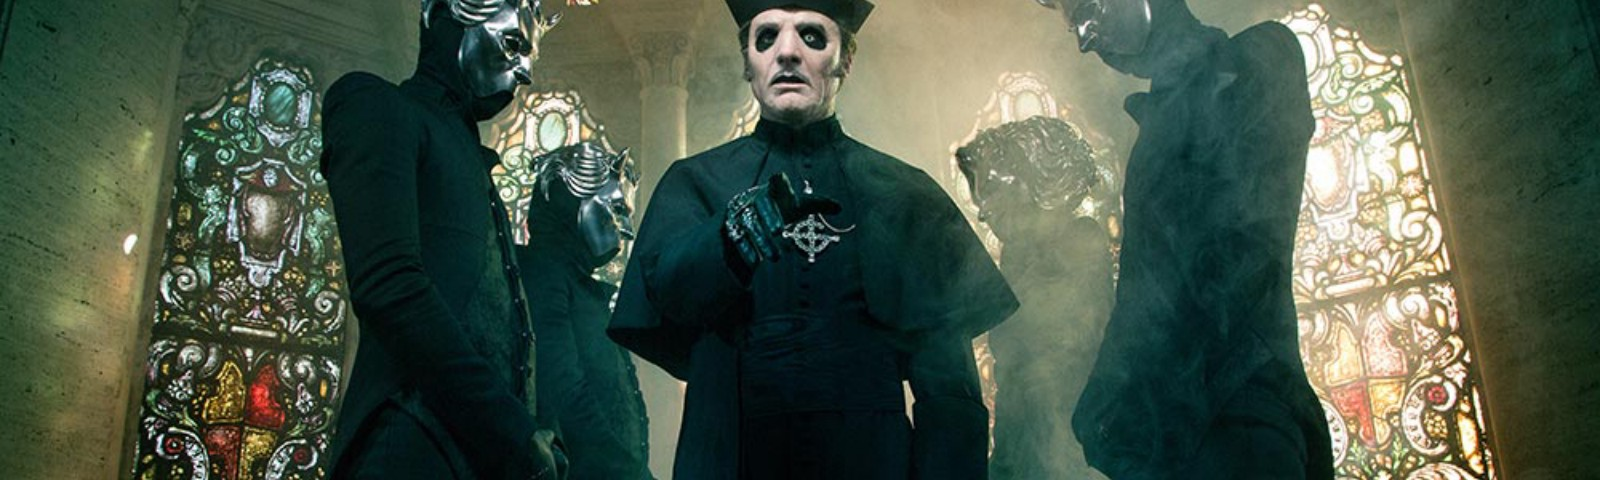 Ghost Facts 10 Things You Need To Know About The High Priests Of Swedish Metal